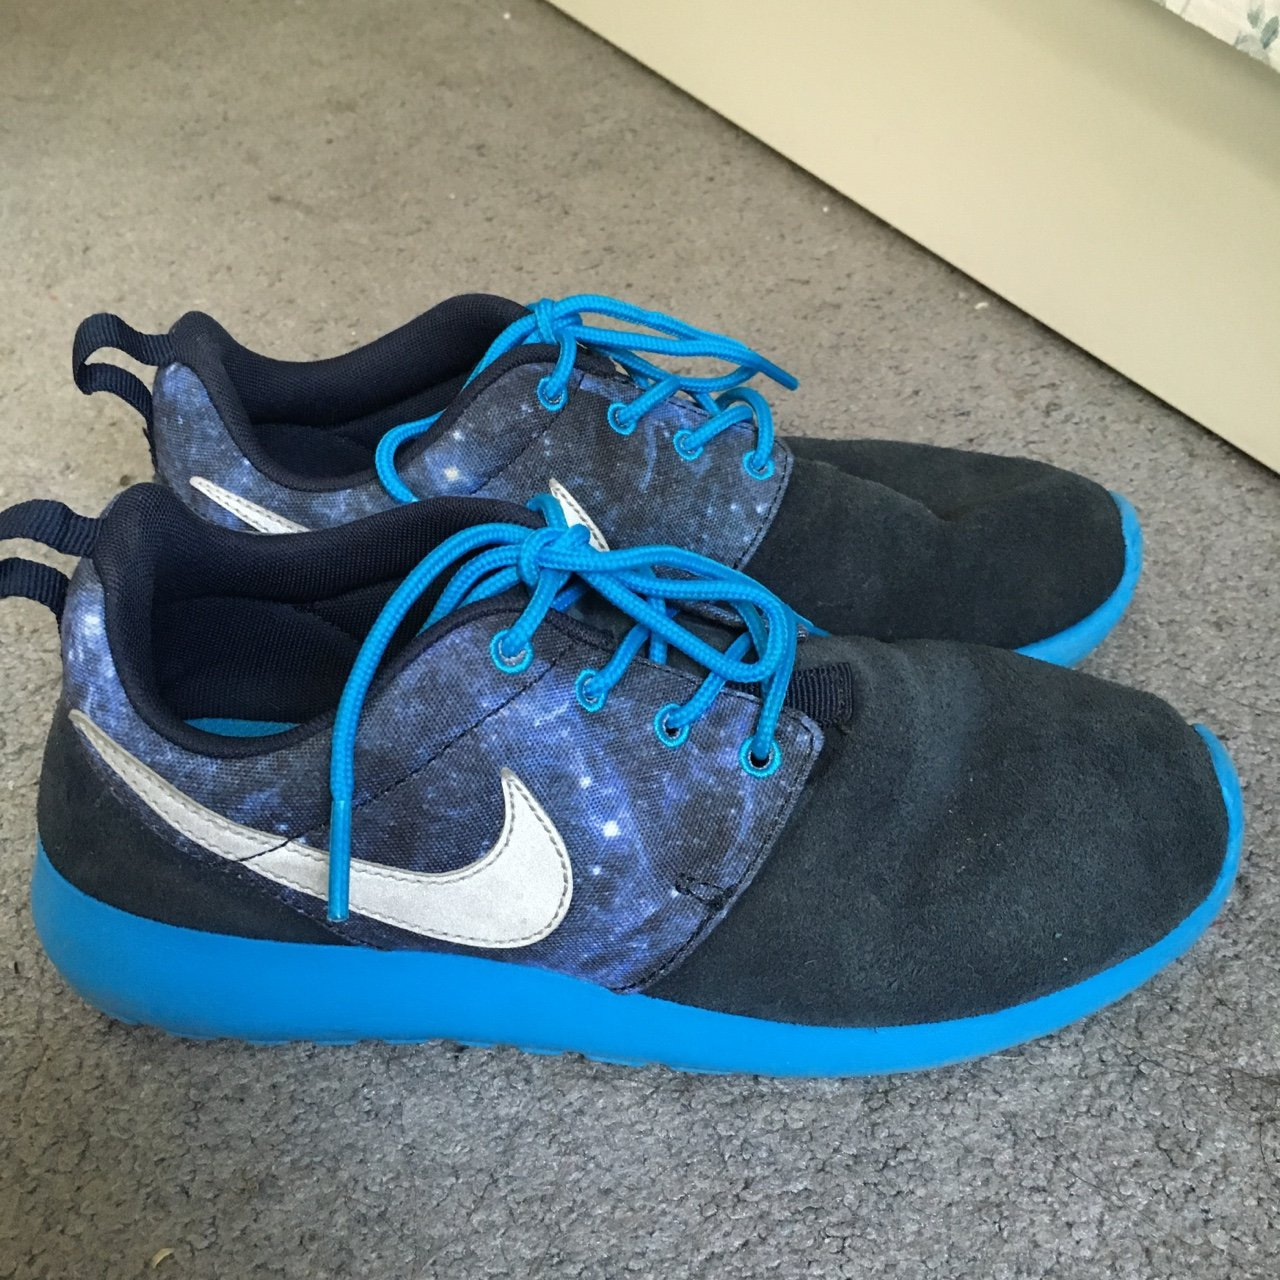 Selling NIKE SUADE GALAXY ROSHES. size 5Y. Condition 7 10. - Depop 7d38097d9f78